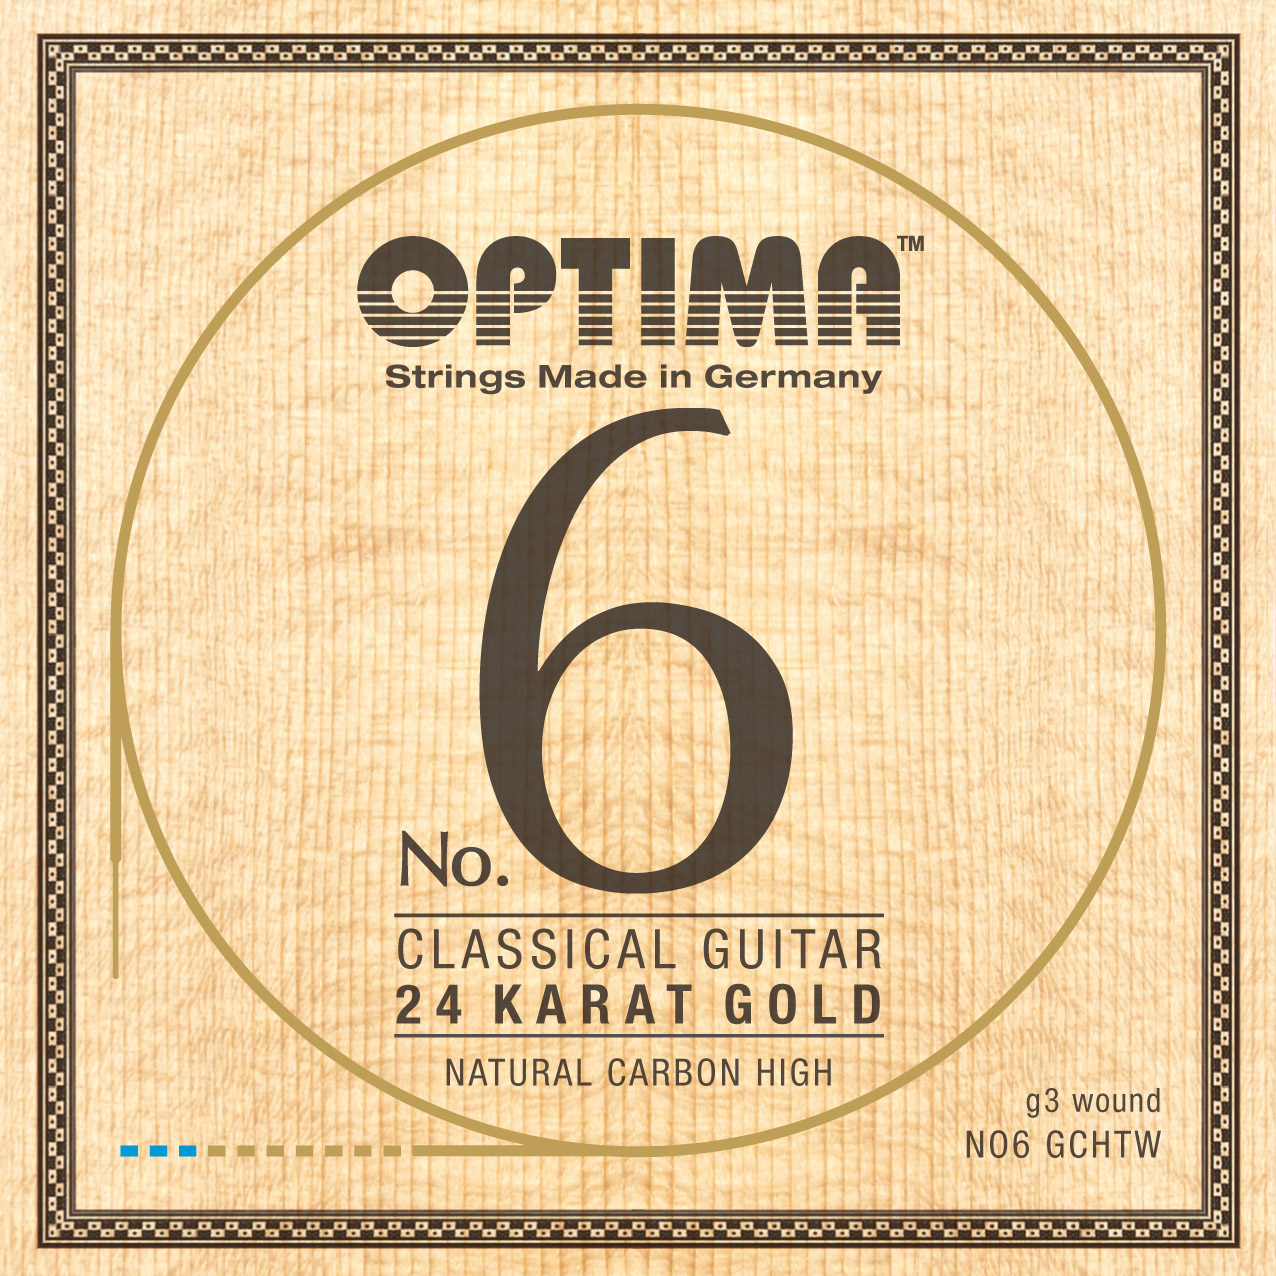 Optima No.6 Konzertgitarre 24K GOLD High Carbon wound g3